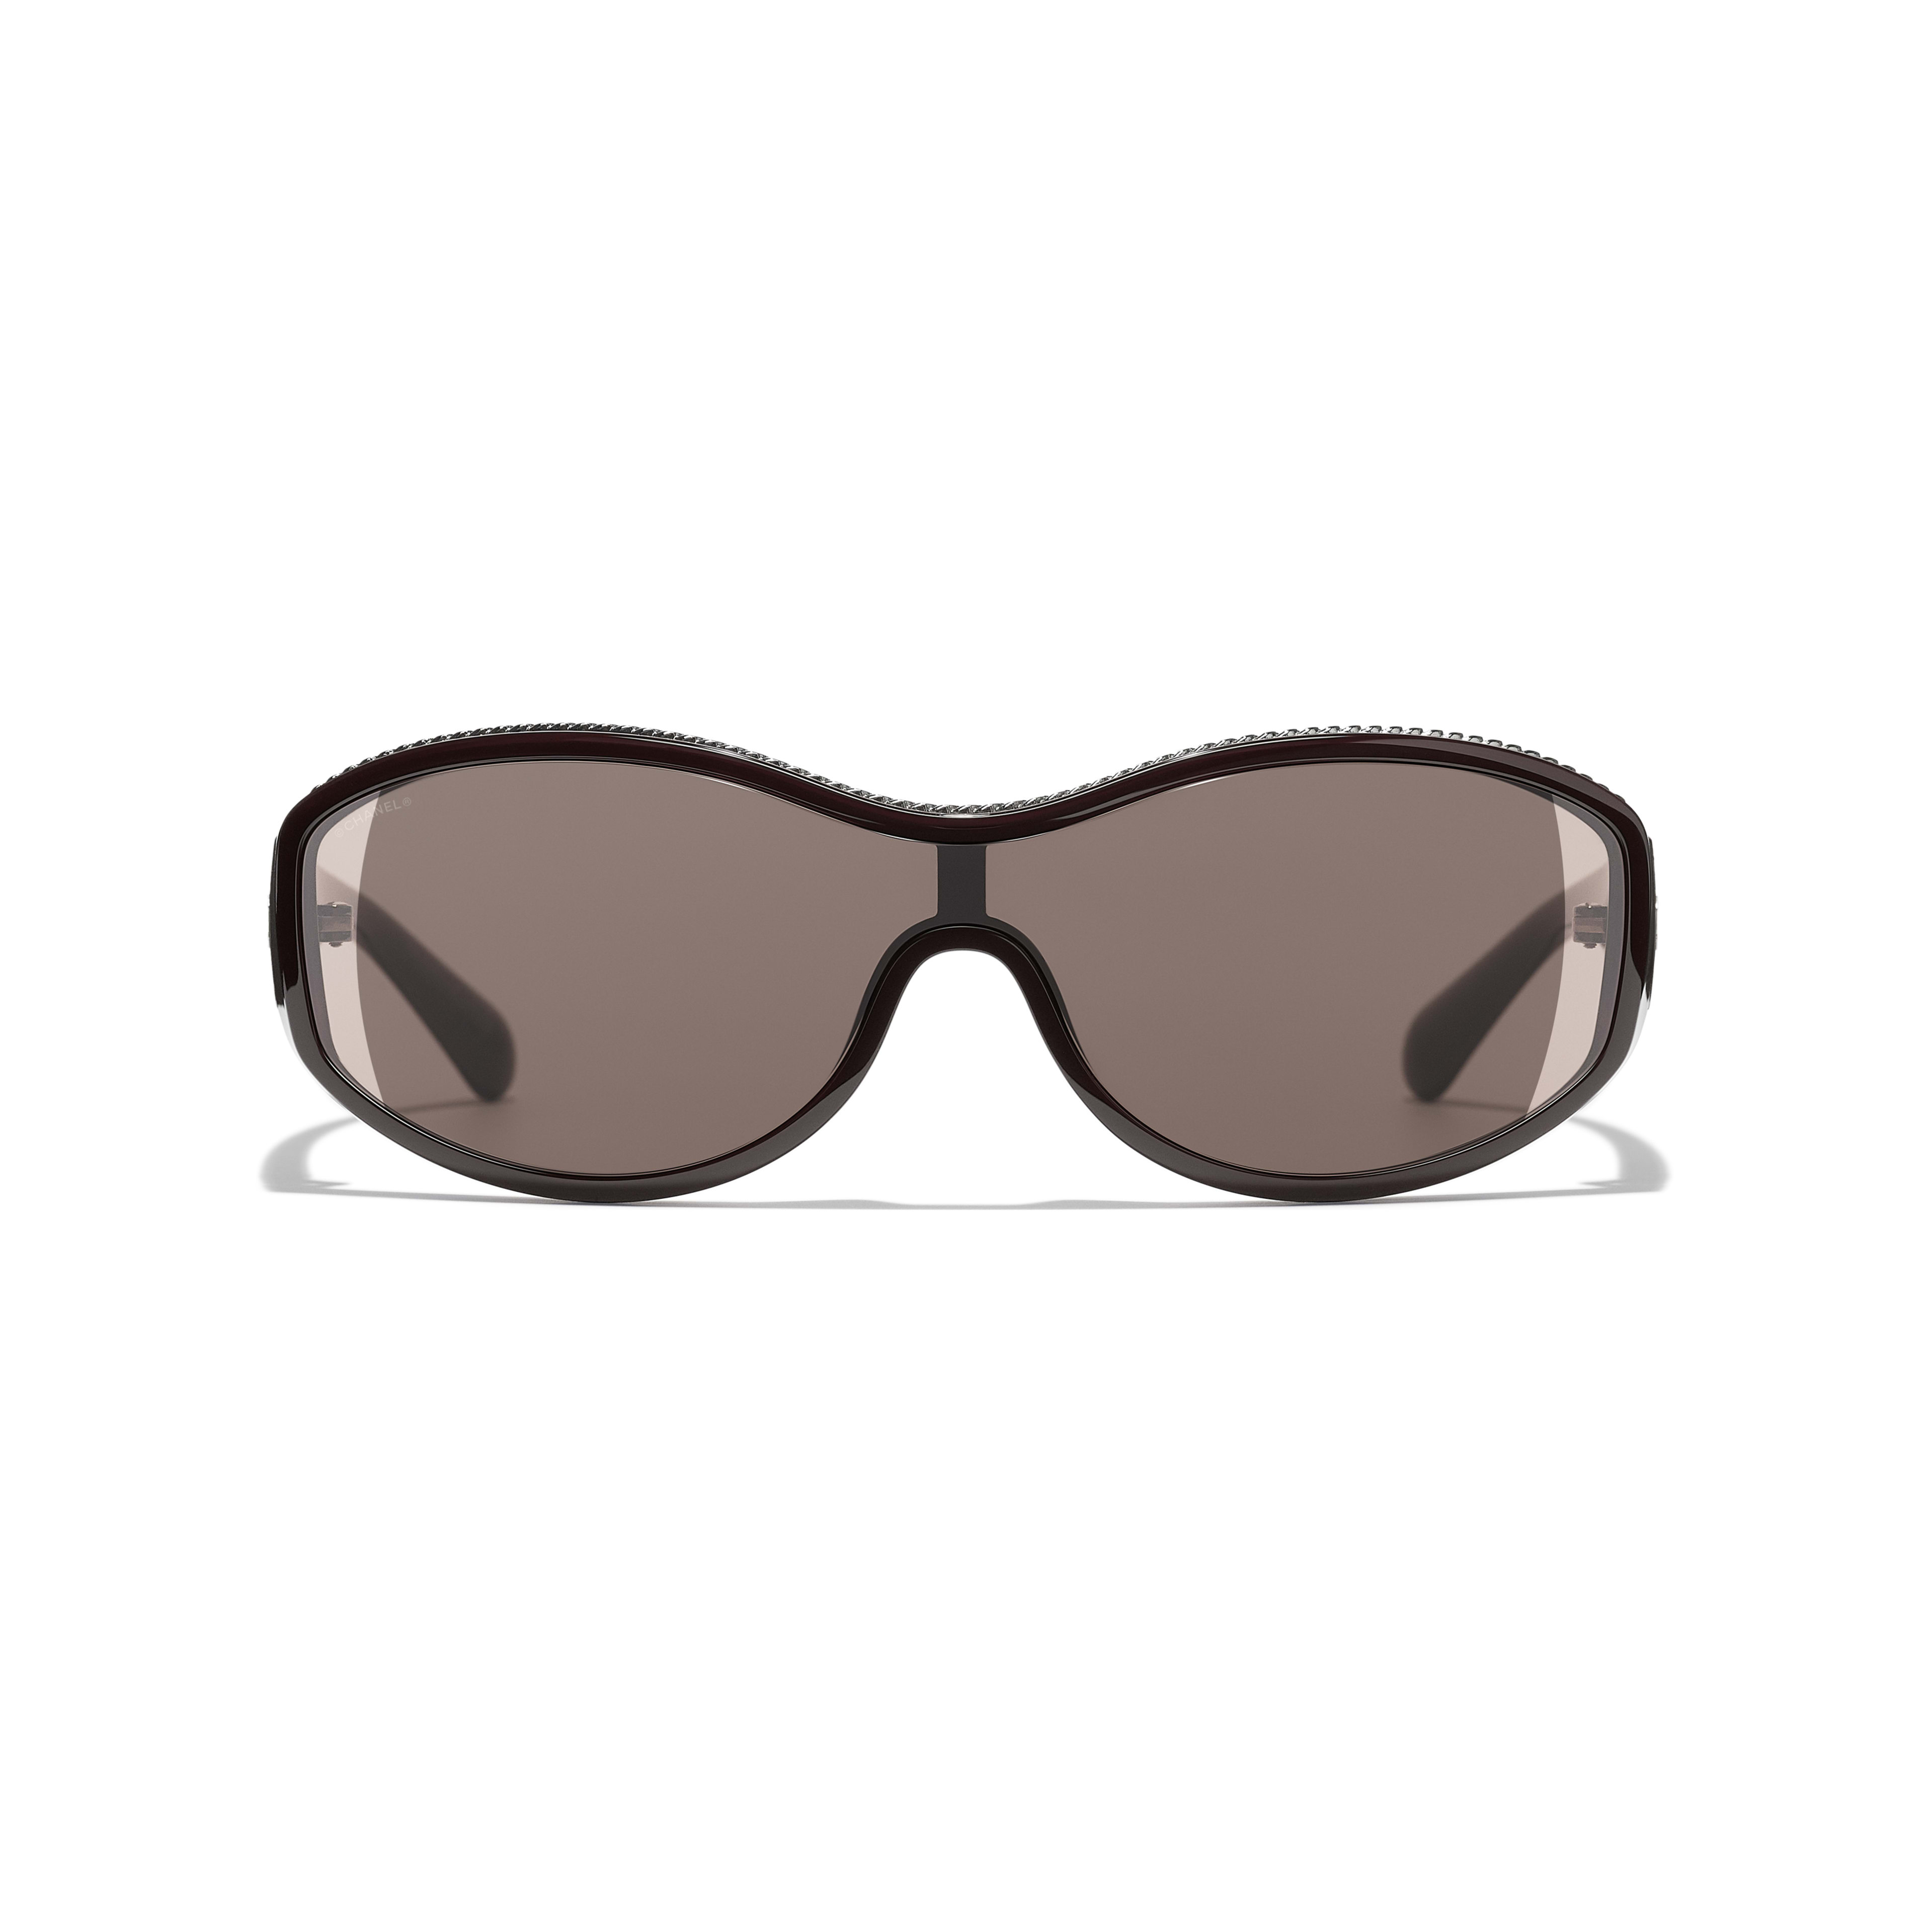 Shield Sunglasses - Burgundy - Nylon & Metal - Alternative view - see full sized version